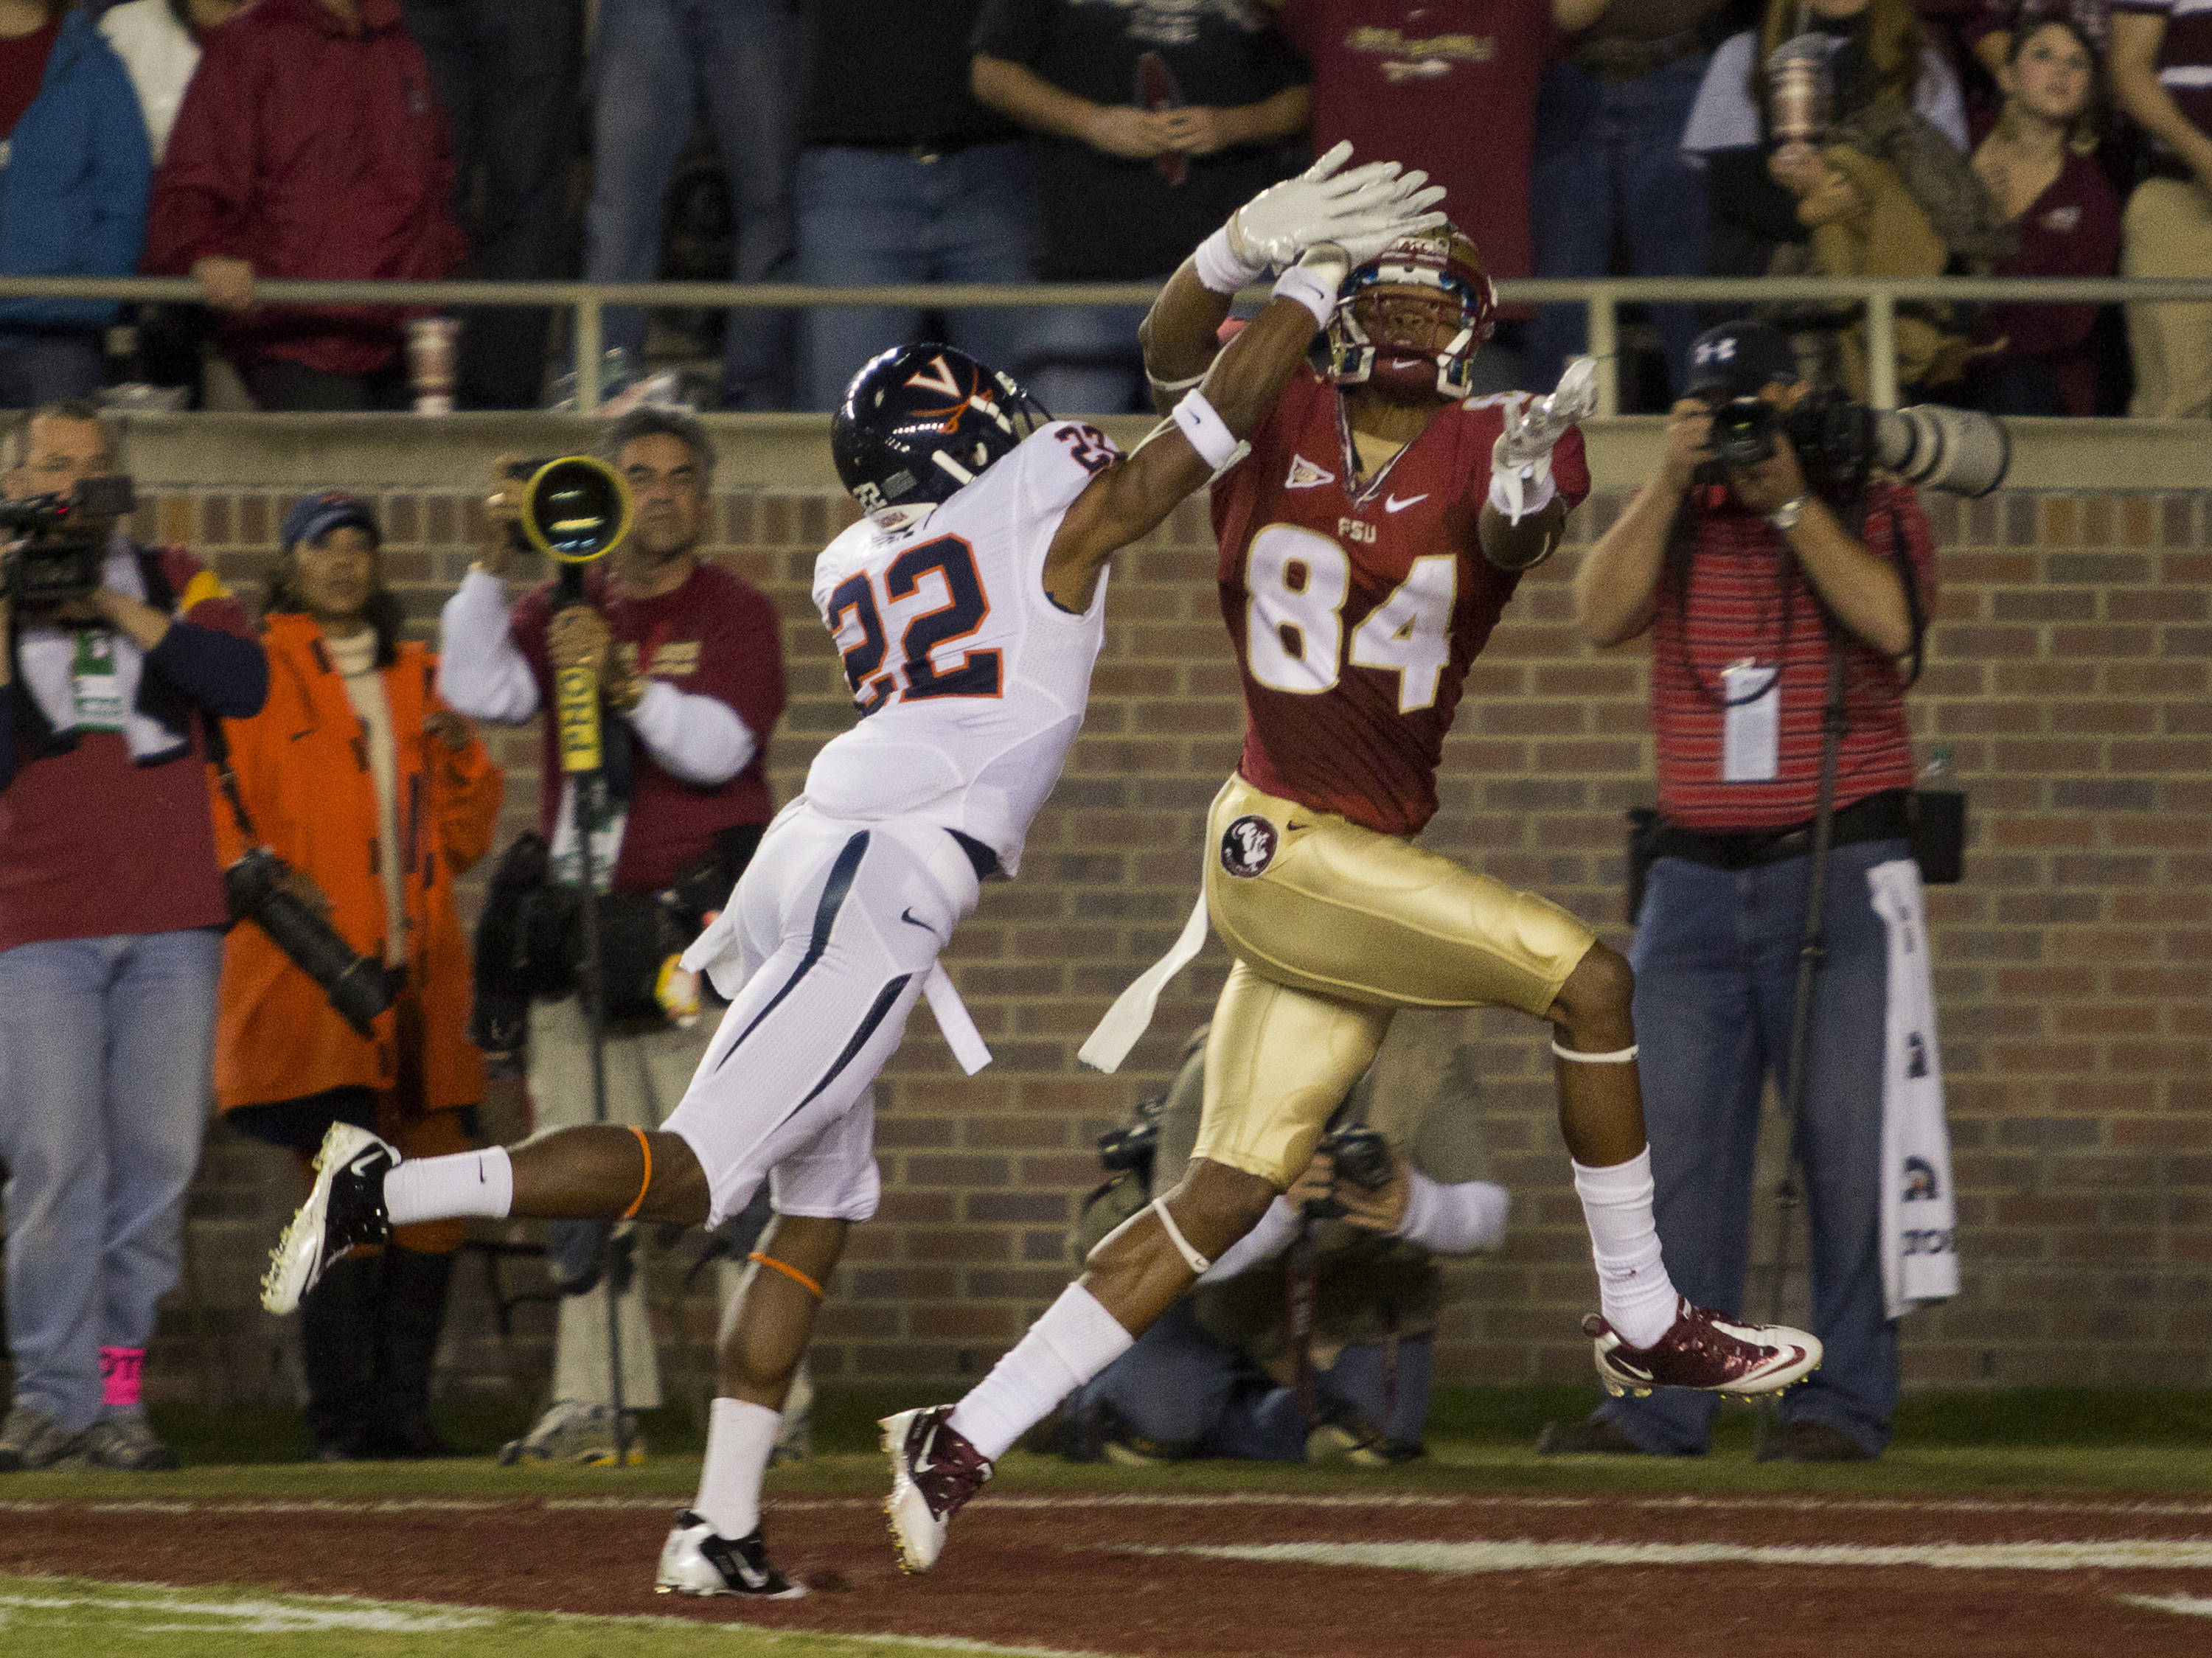 Rodney Smith (84) attempts to see past a defender's hand to catch a pass during the game against Virginia on November 29, 2011.  The pass was incomplete.